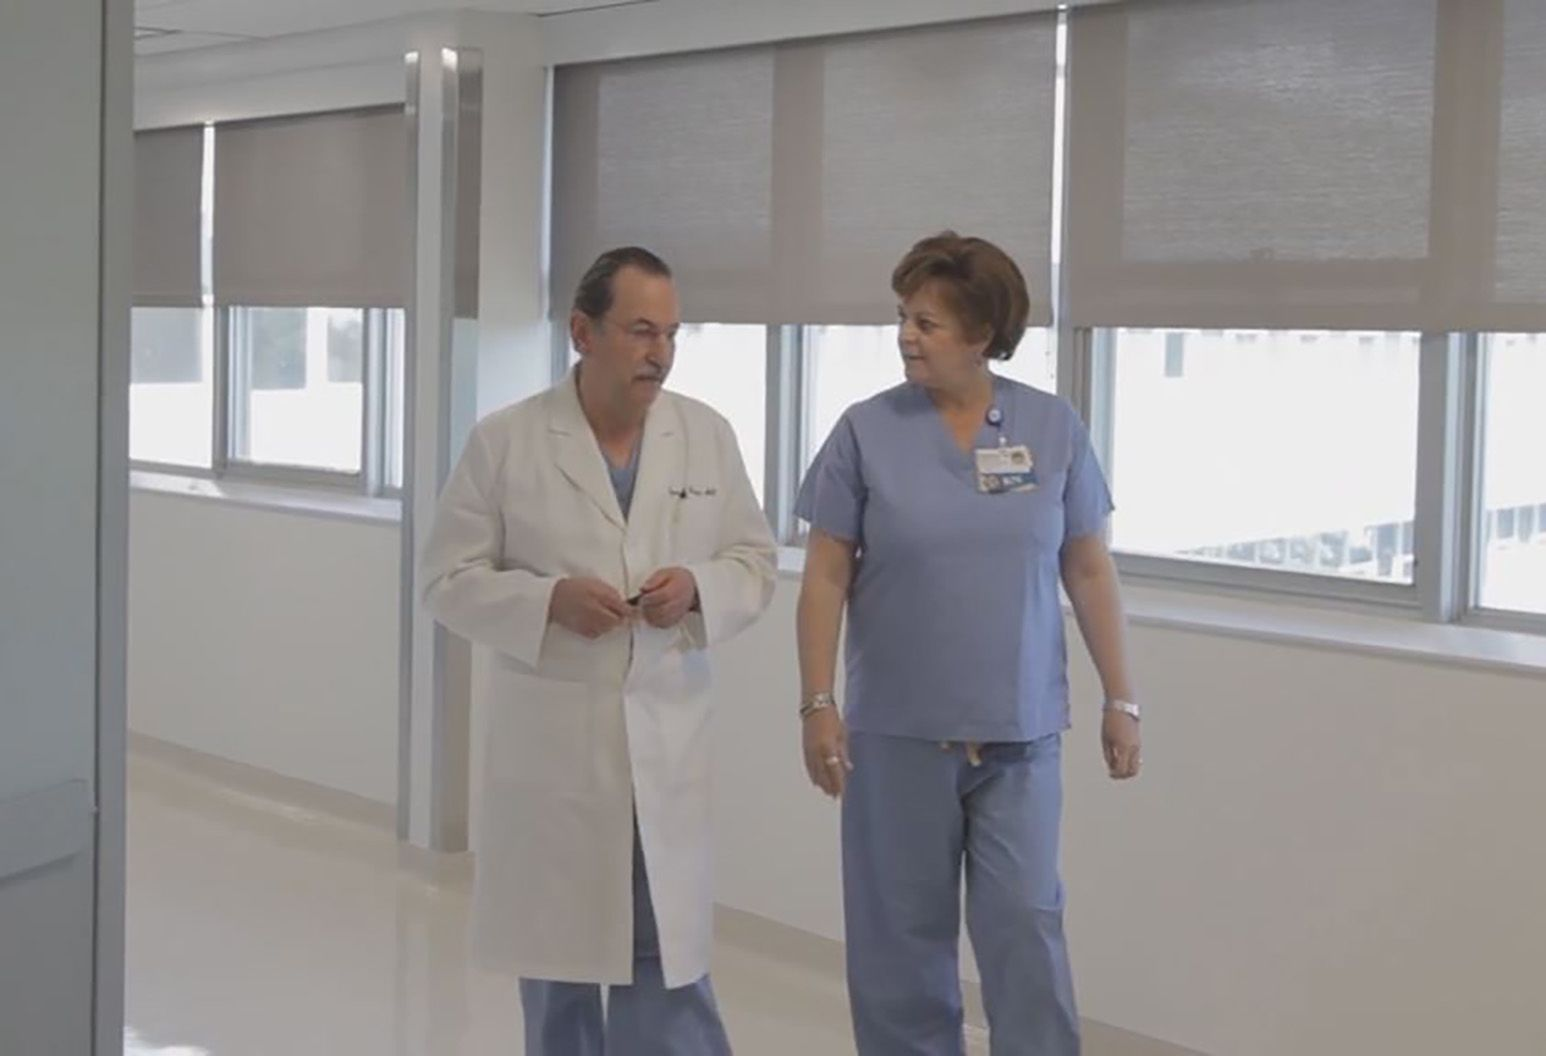 A male doctor and a female nurse walk in the hallway of a hospital. The doctor is wearing a white lab coat and is the nurse is wearing blue scrubs.